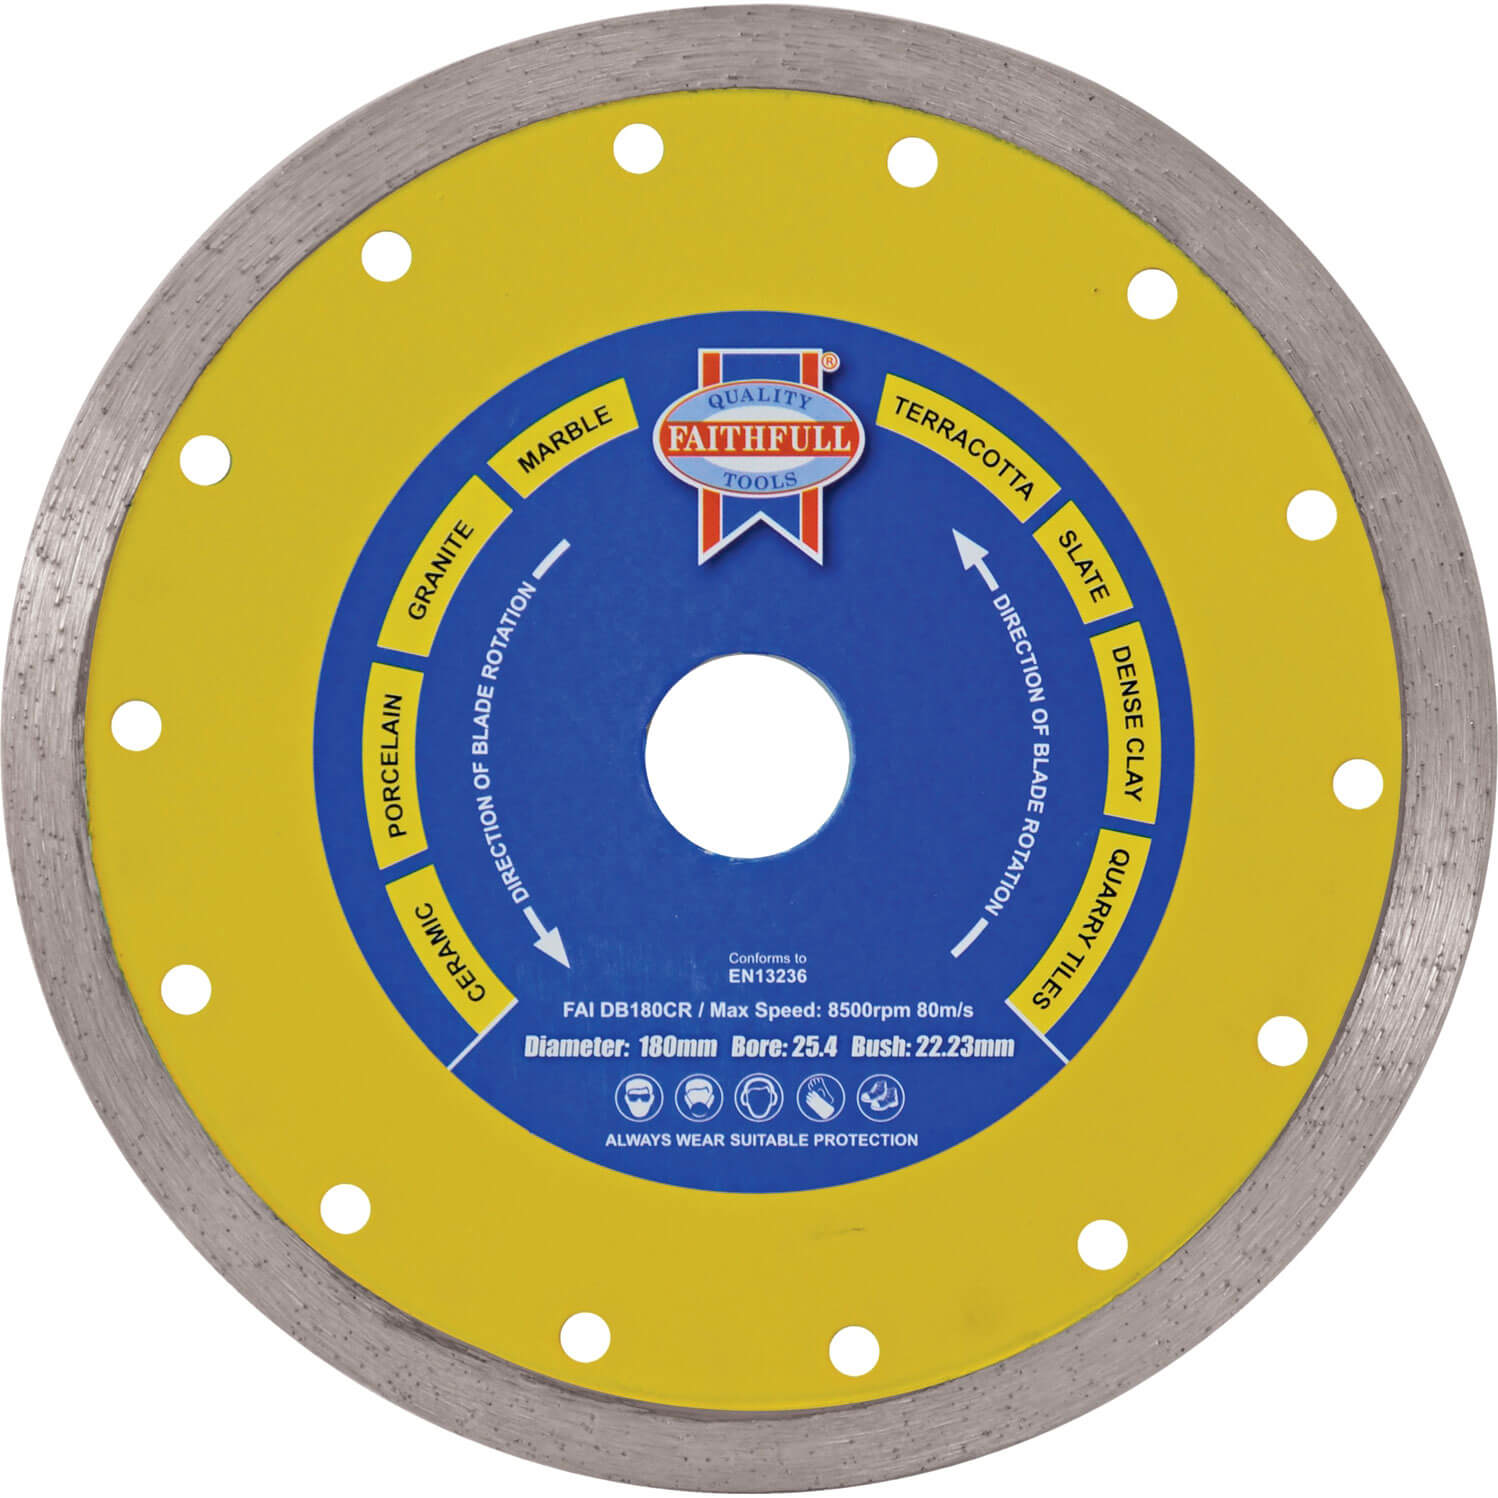 Image of Faithfull Tile Cutting Continuous Rim Diamond Blade 115mm